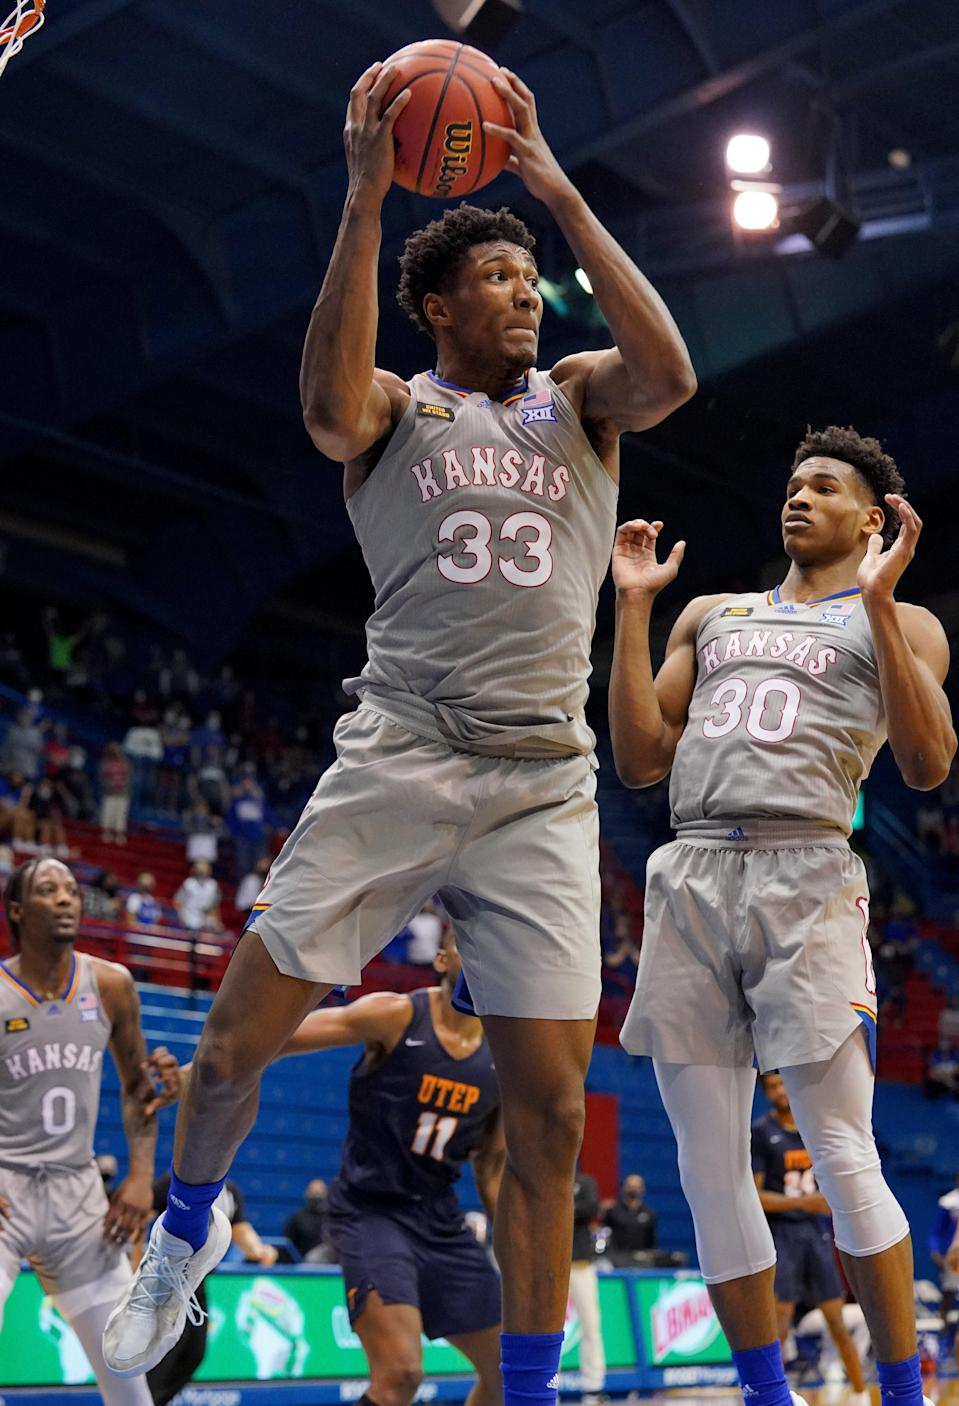 Kansas forward David McCormack has been cleared to return from COVID-19 quarantine and will play for the Jayhawks in their NCAA Tournament opener against Eastern Washington.